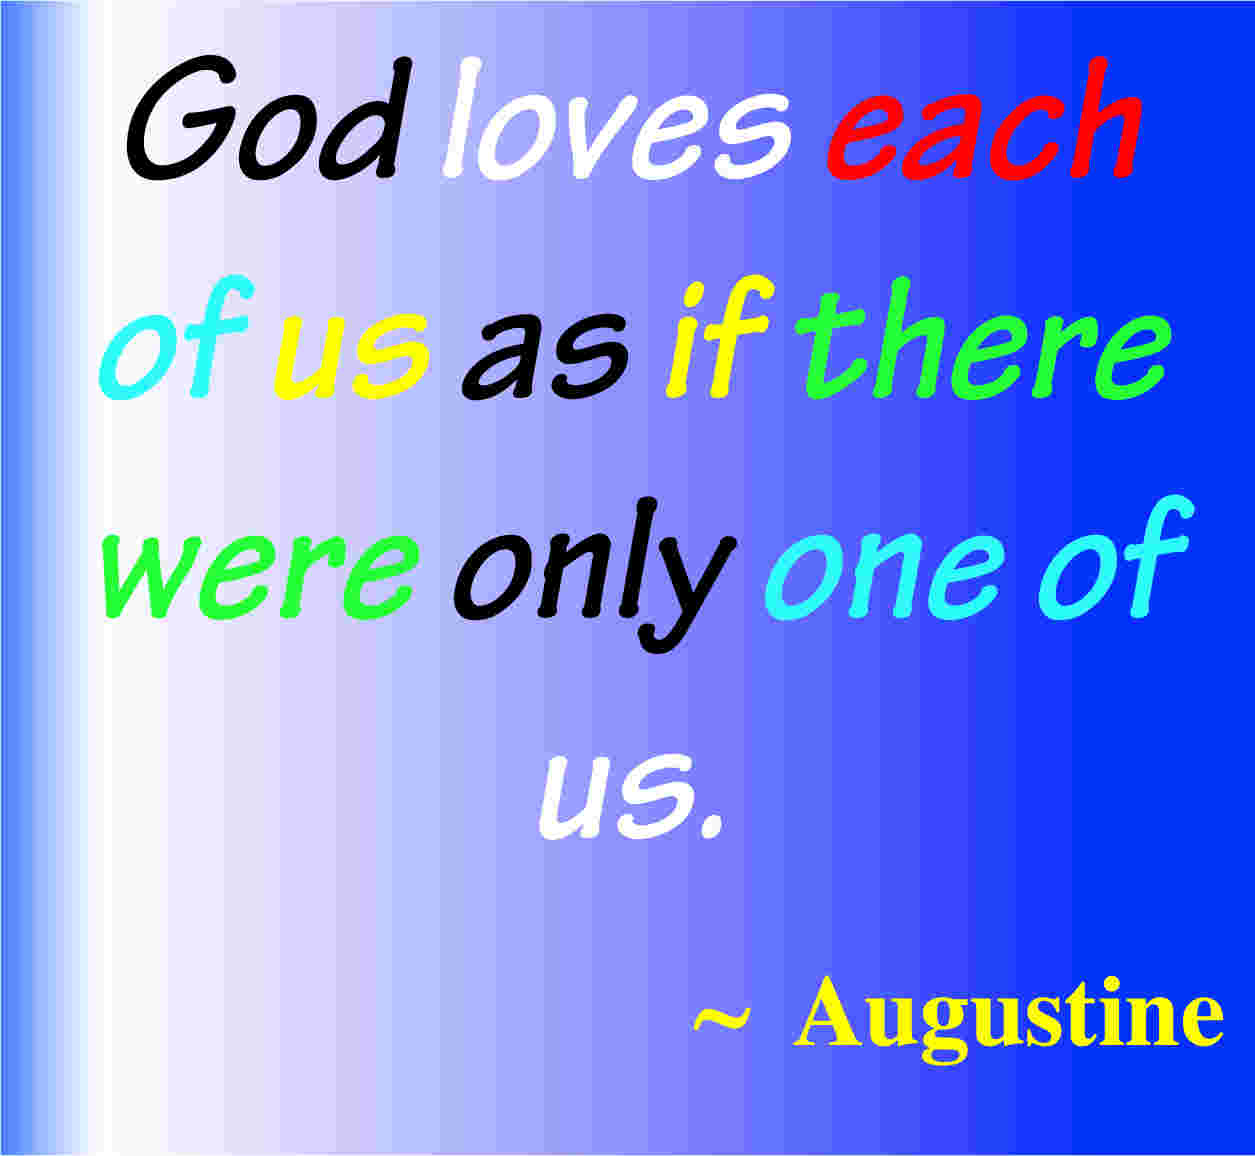 Biblical Quotes About Love 20 Inspirational Bible Verses About God's Love